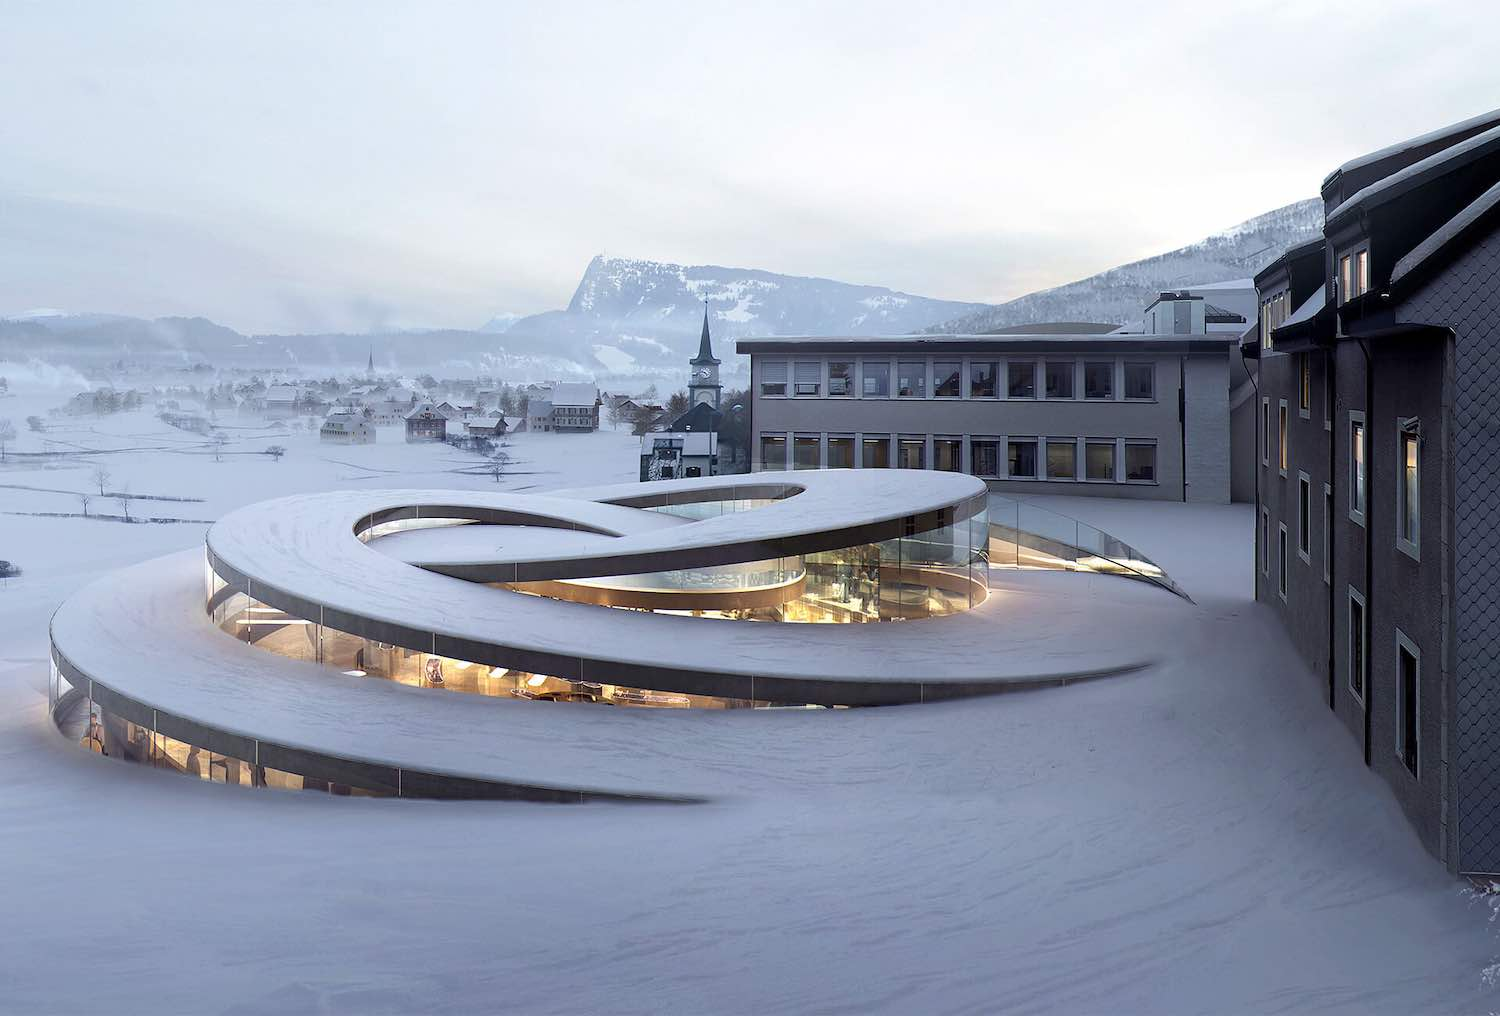 Ateiler Audemars Piguet Museum - Courtesy of BIG, Bjarke Ingels Group.